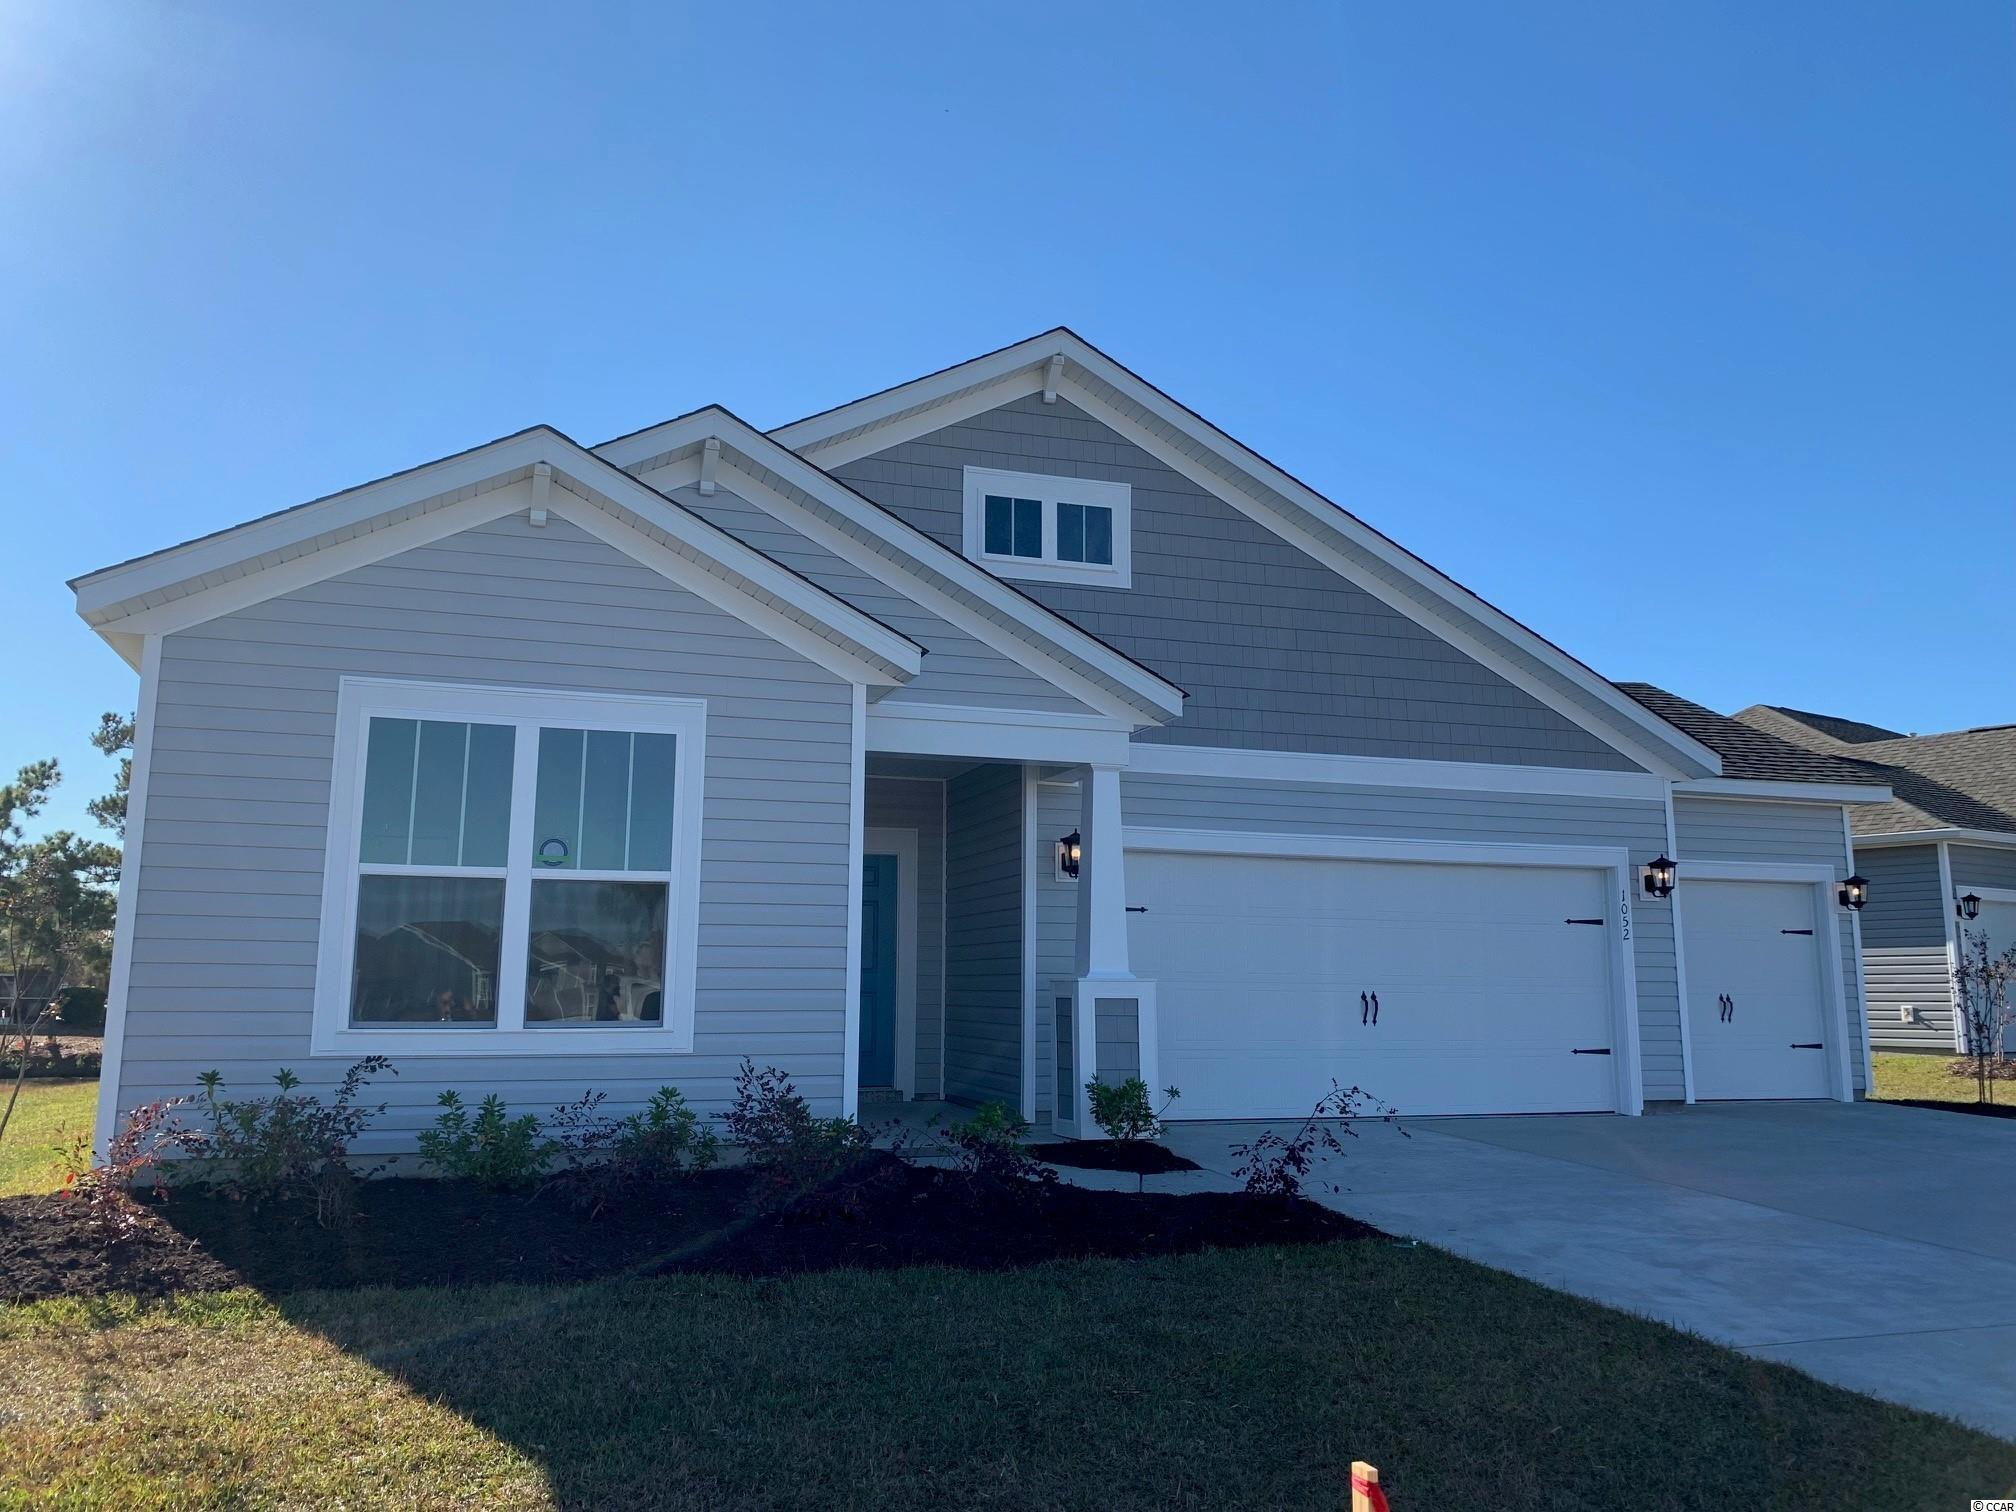 """This personalized Georgetown (COL Coastal front Elevation) home features a 3-car garage, 3 bedrooms, 2 baths, and an open concept design with the kitchen open to the dining room, great room, and Carolina room.  A lovely canal view can be enjoyed from the kitchen, dining room, great room, Carolina room, and primary bedroom.  The marvelous primary bedroom creates a charming escape with a bay window and generous primary bath that offers a huge walk-in tile spa shower with a glass enclosure, rain showerhead, wall showerhead, tile dry-off bench, a double sink vanity and a water closet.  This Georgetown boasts upgraded features: Whirlpool stainless steel kitchen appliances, Daltile tile in all baths and the generous laundry room, easy care Mohawk Rev Wood laminate flooring in the living areas and bedrooms.  Crisp white Level-2 42"""" Master Brand cabinets, Level-2 Simply White quartz countertops, and a Level-3 Smoked Pearl Daltile backsplash create a cool coastal motif in this entertainer's kitchen.  All chrome Moen plumbing fixtures and Progress Light fixtures throughout.  Attic storage with pull down stairs is offered above the 2-car garage.  A natural gas grill line was added off the Carolina room.  The spacious laundry room includes a natural gas dryer connection.  A natural gas tankless Rinnai water heater and Energy Start Certification creates more comfort at a lower cost.  The Belle Mer community offers amenities galore; a community pool, clubhouse, exercise room, sidewalks, fishing and non-motorized boating lakes, and a premier location less than 3 miles to the beach, across from South Strand Commons shopping and dining venue, and so much more!"""